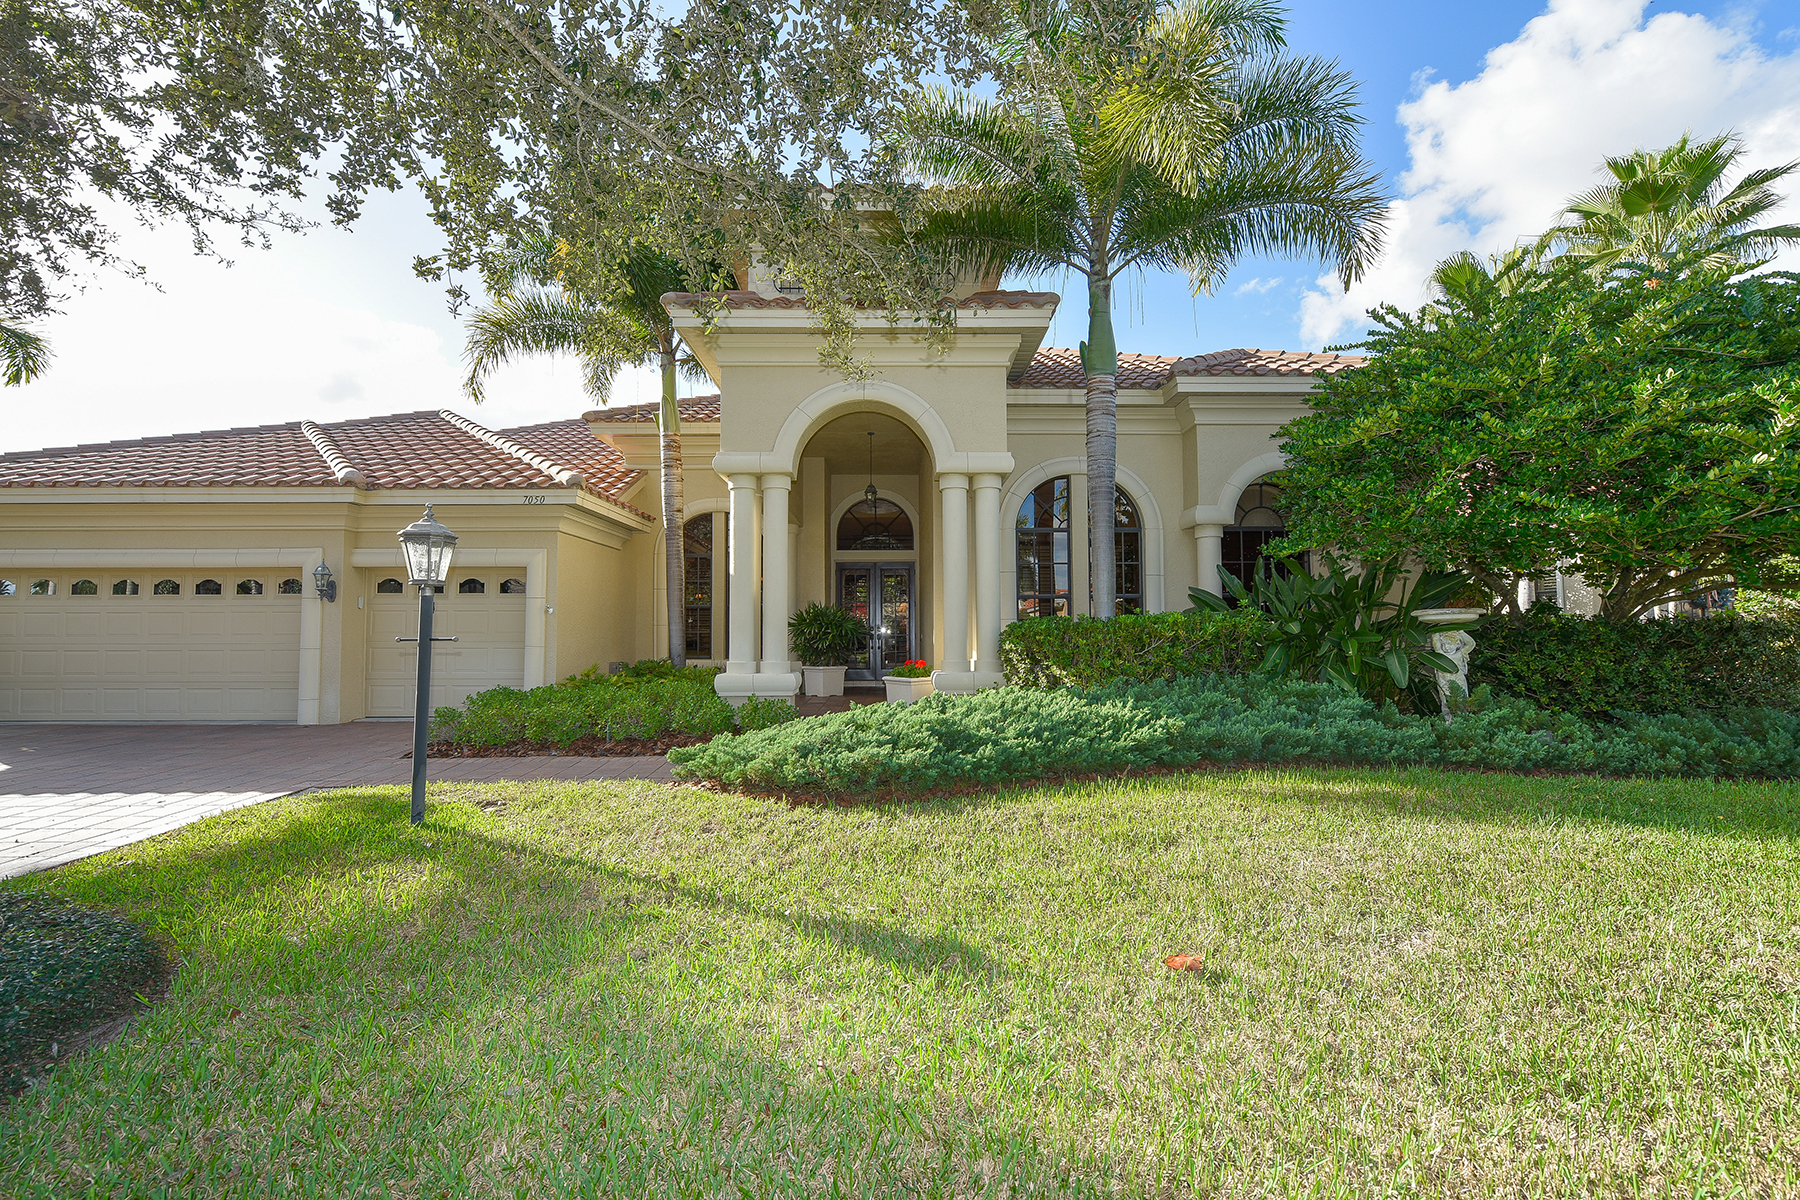 Single Family Home for Sale at LAKEWOOD RANCH - LEGENDS WALK 7050 Kingsmill Ct Lakewood Ranch, Florida, 34202 United States